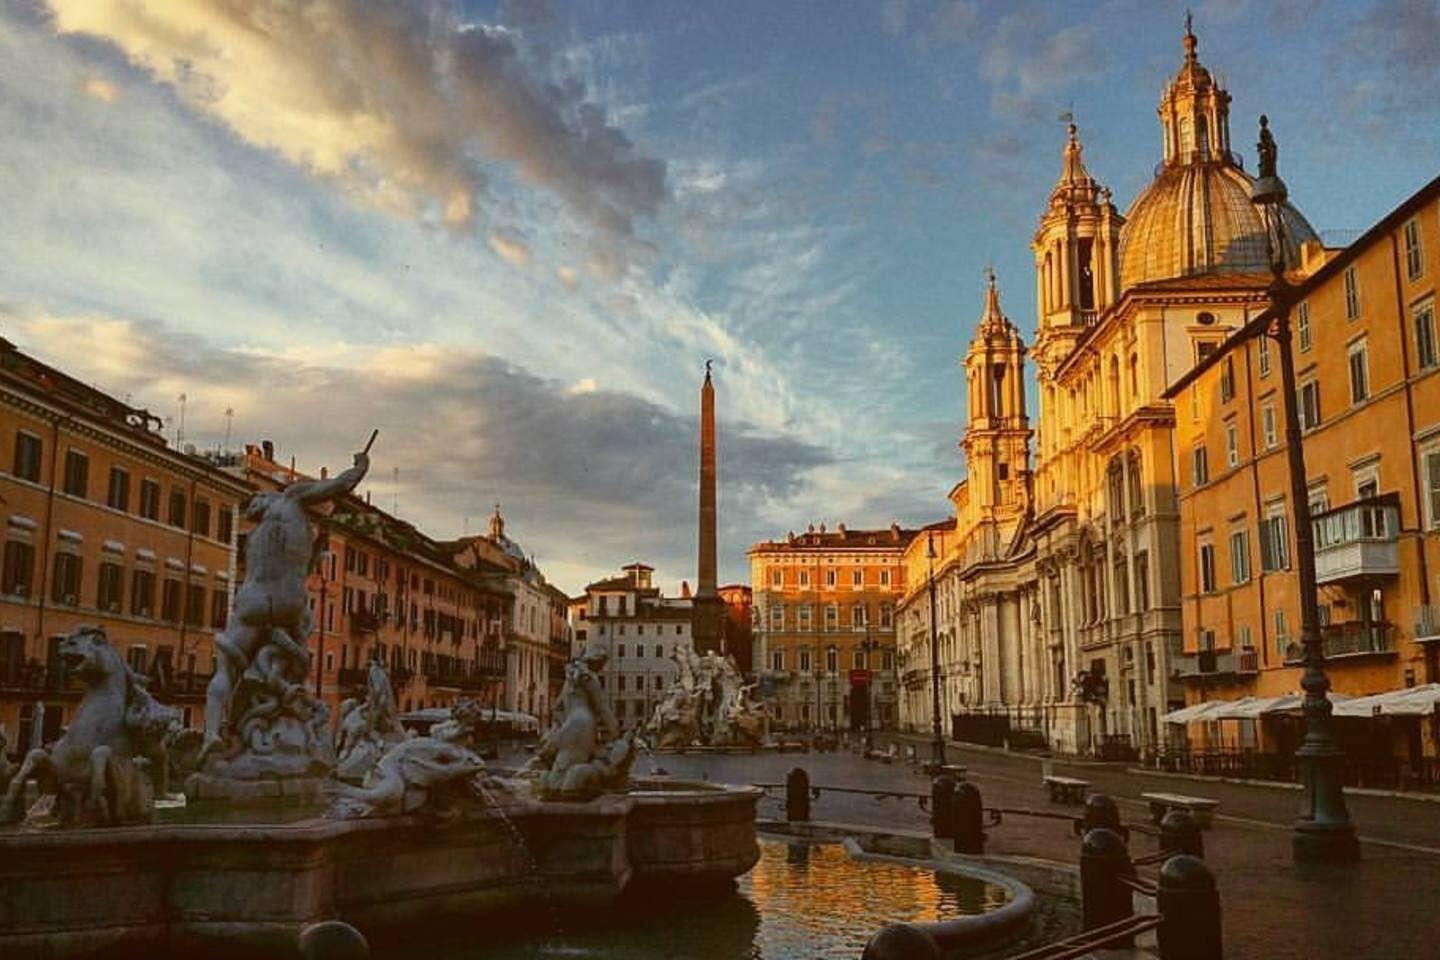 Trevi Holiday | Dream Stay for 2 in Heart of Rome! Slide-2